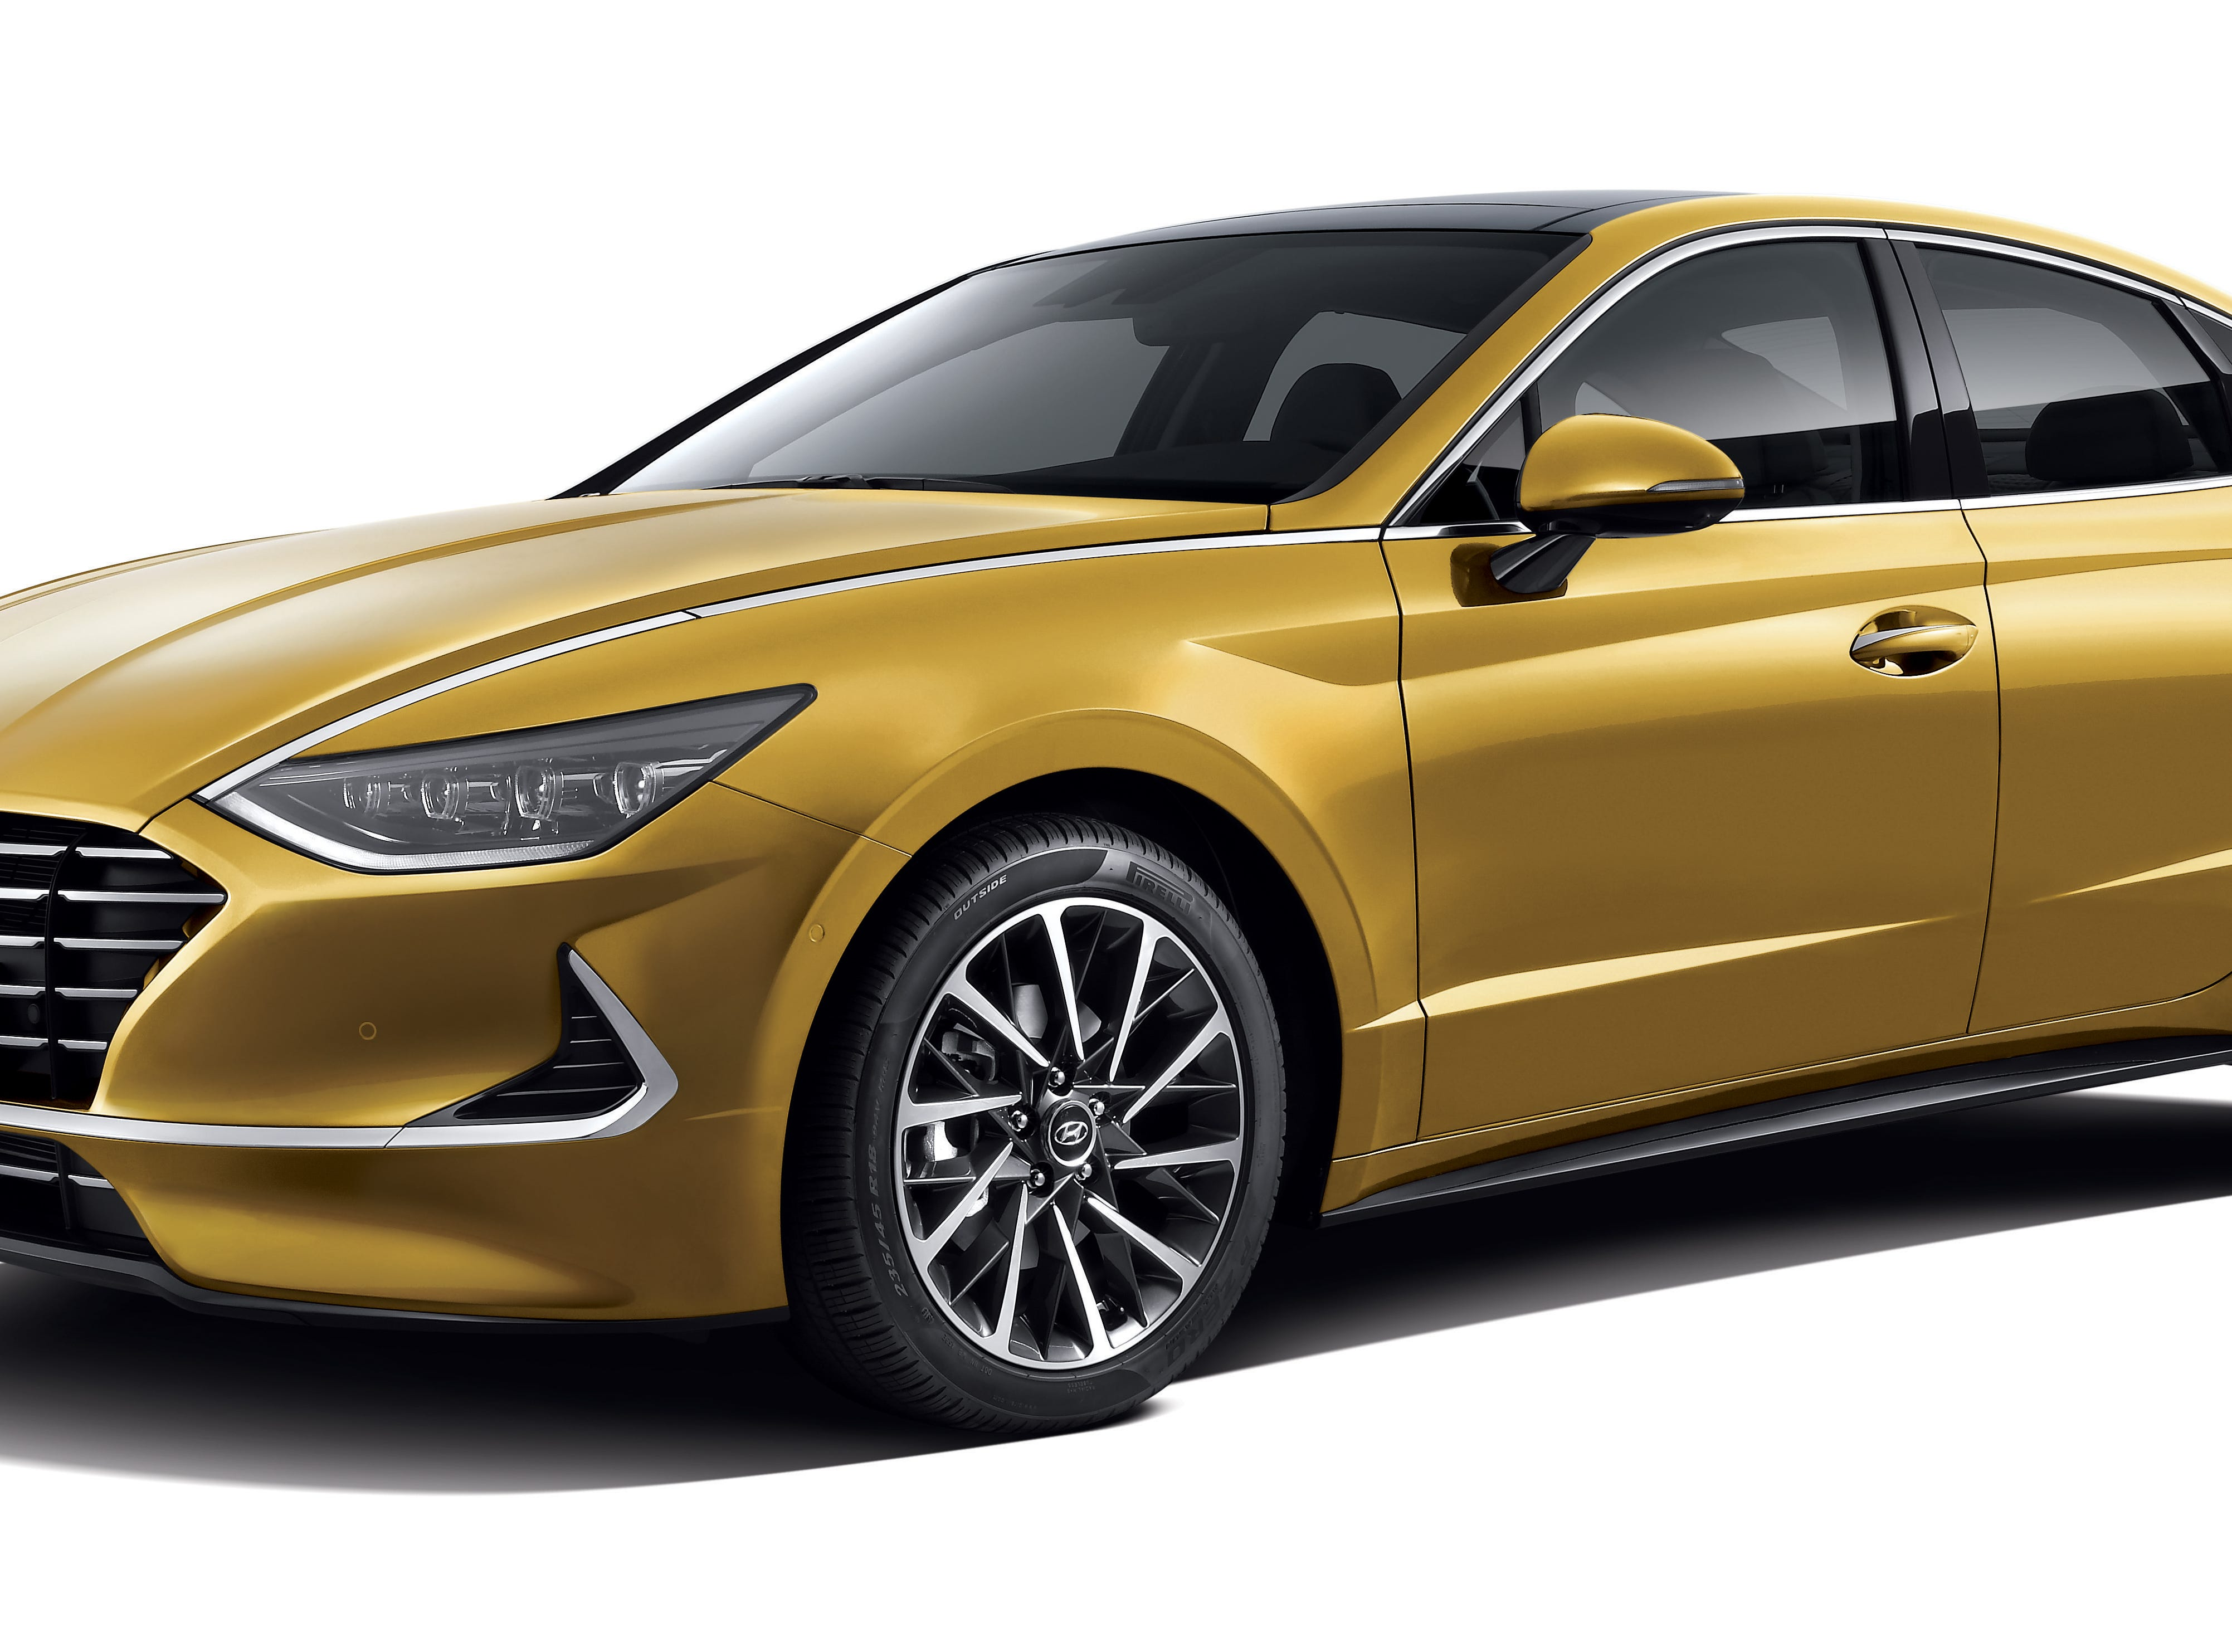 The mid-size sedan brings an Aston Martin-esque vibe with the yellow paint job. The large crisscross alloy wheels add sporty appeal.